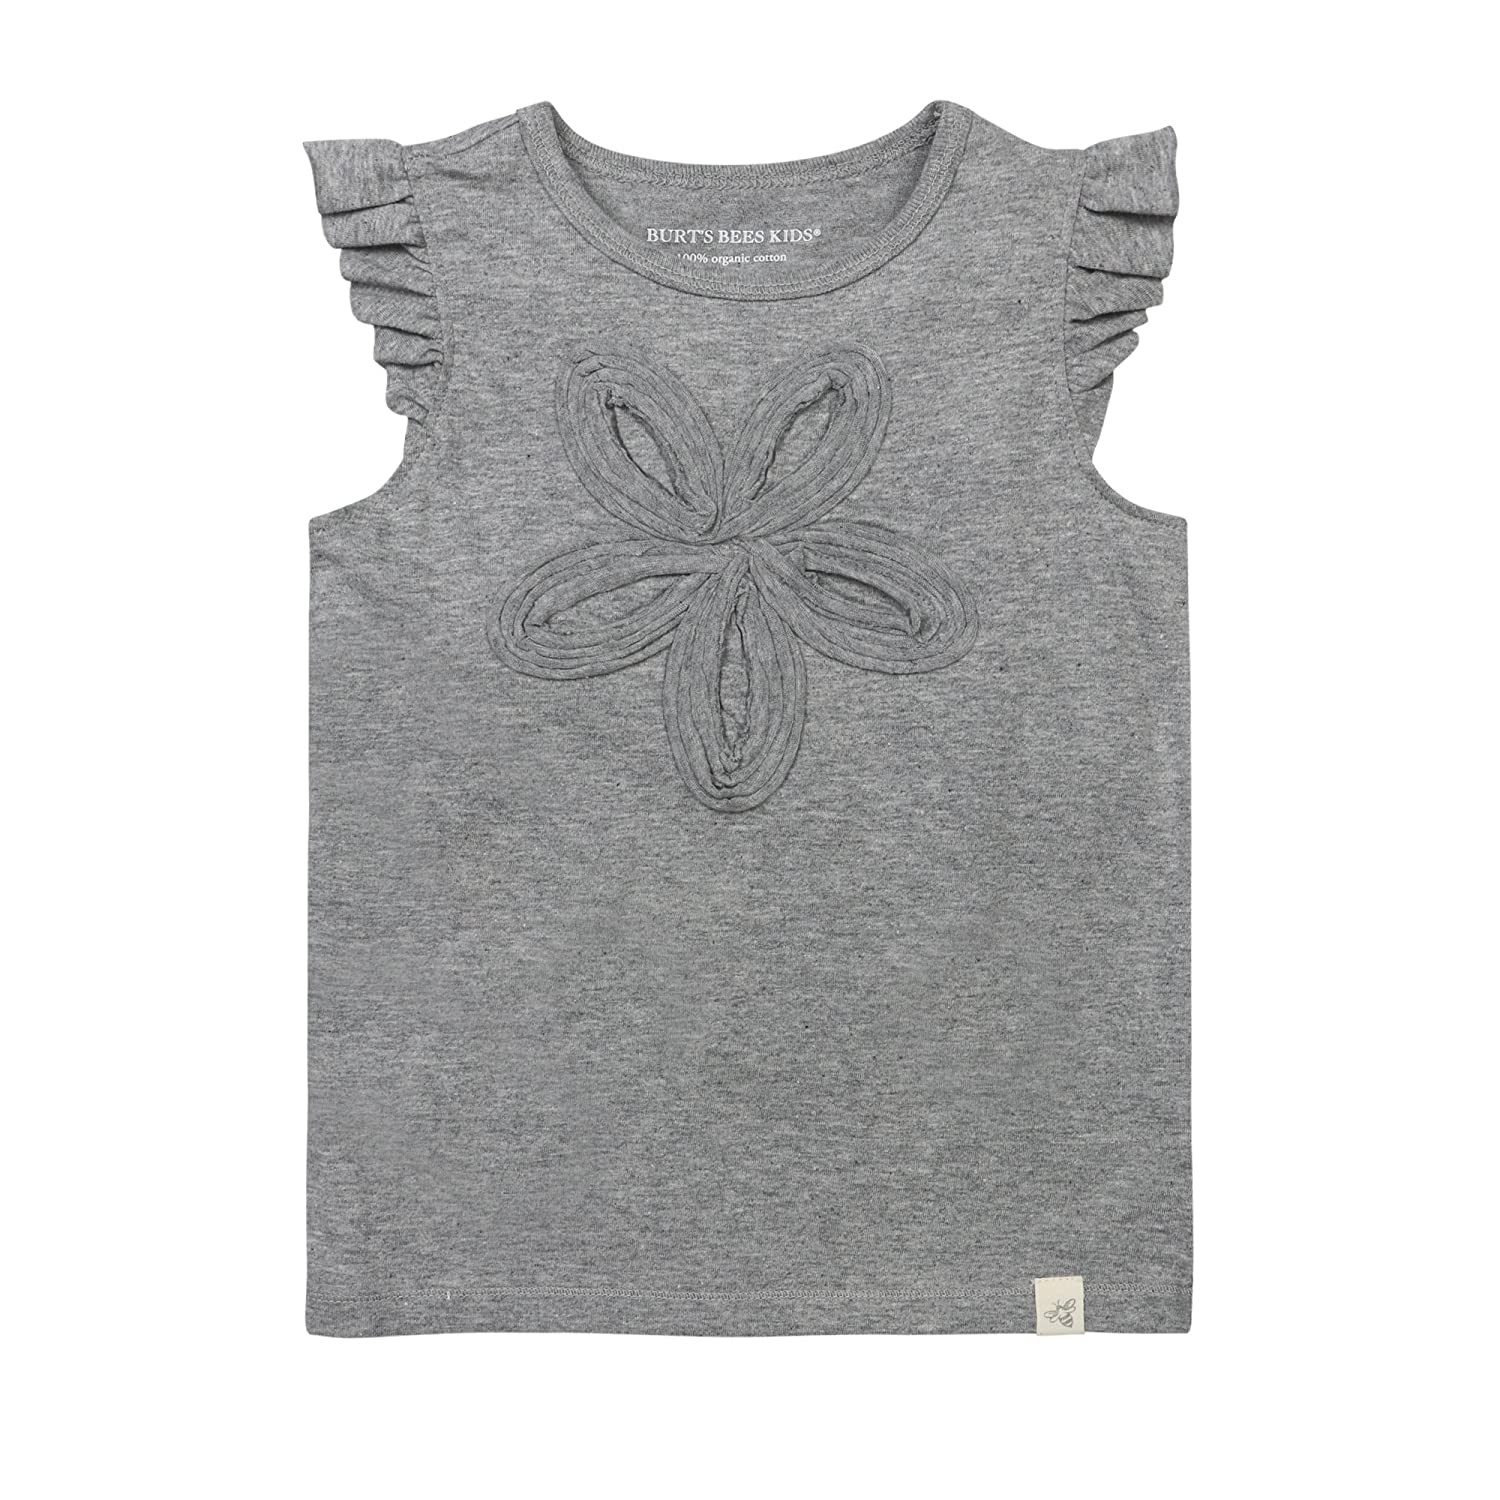 Burt's Bees Baby Girl's Short Sleeve and Sleeveless Tees, Tank Tops, 100% Organic Cotton